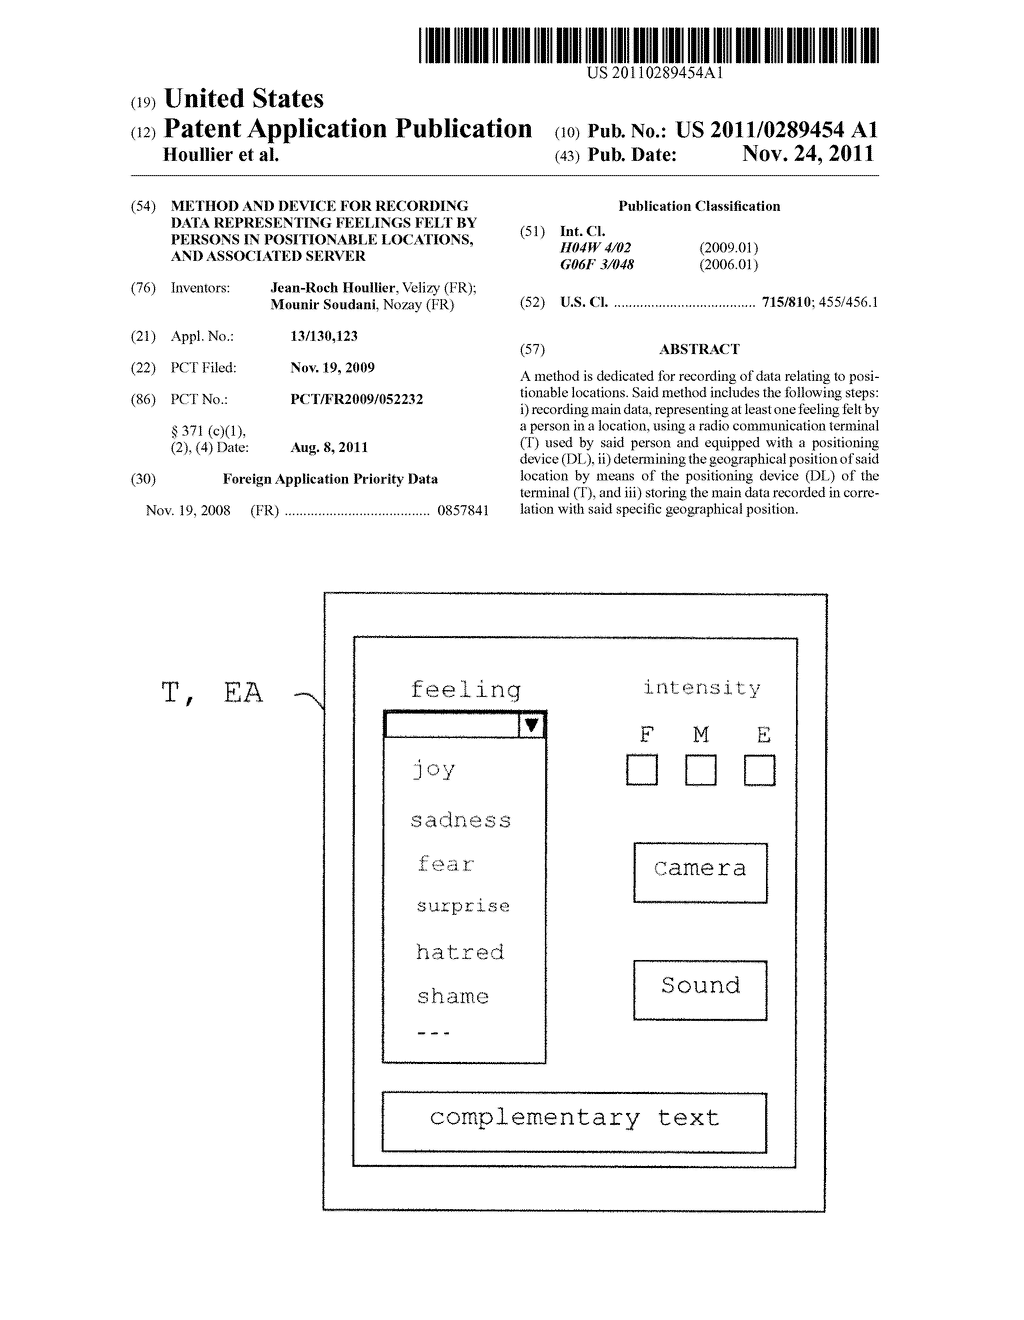 METHOD AND DEVICE FOR RECORDING DATA REPRESENTING FEELINGS FELT BY PERSONS     IN POSITIONABLE LOCATIONS, AND ASSOCIATED SERVER - diagram, schematic, and image 01